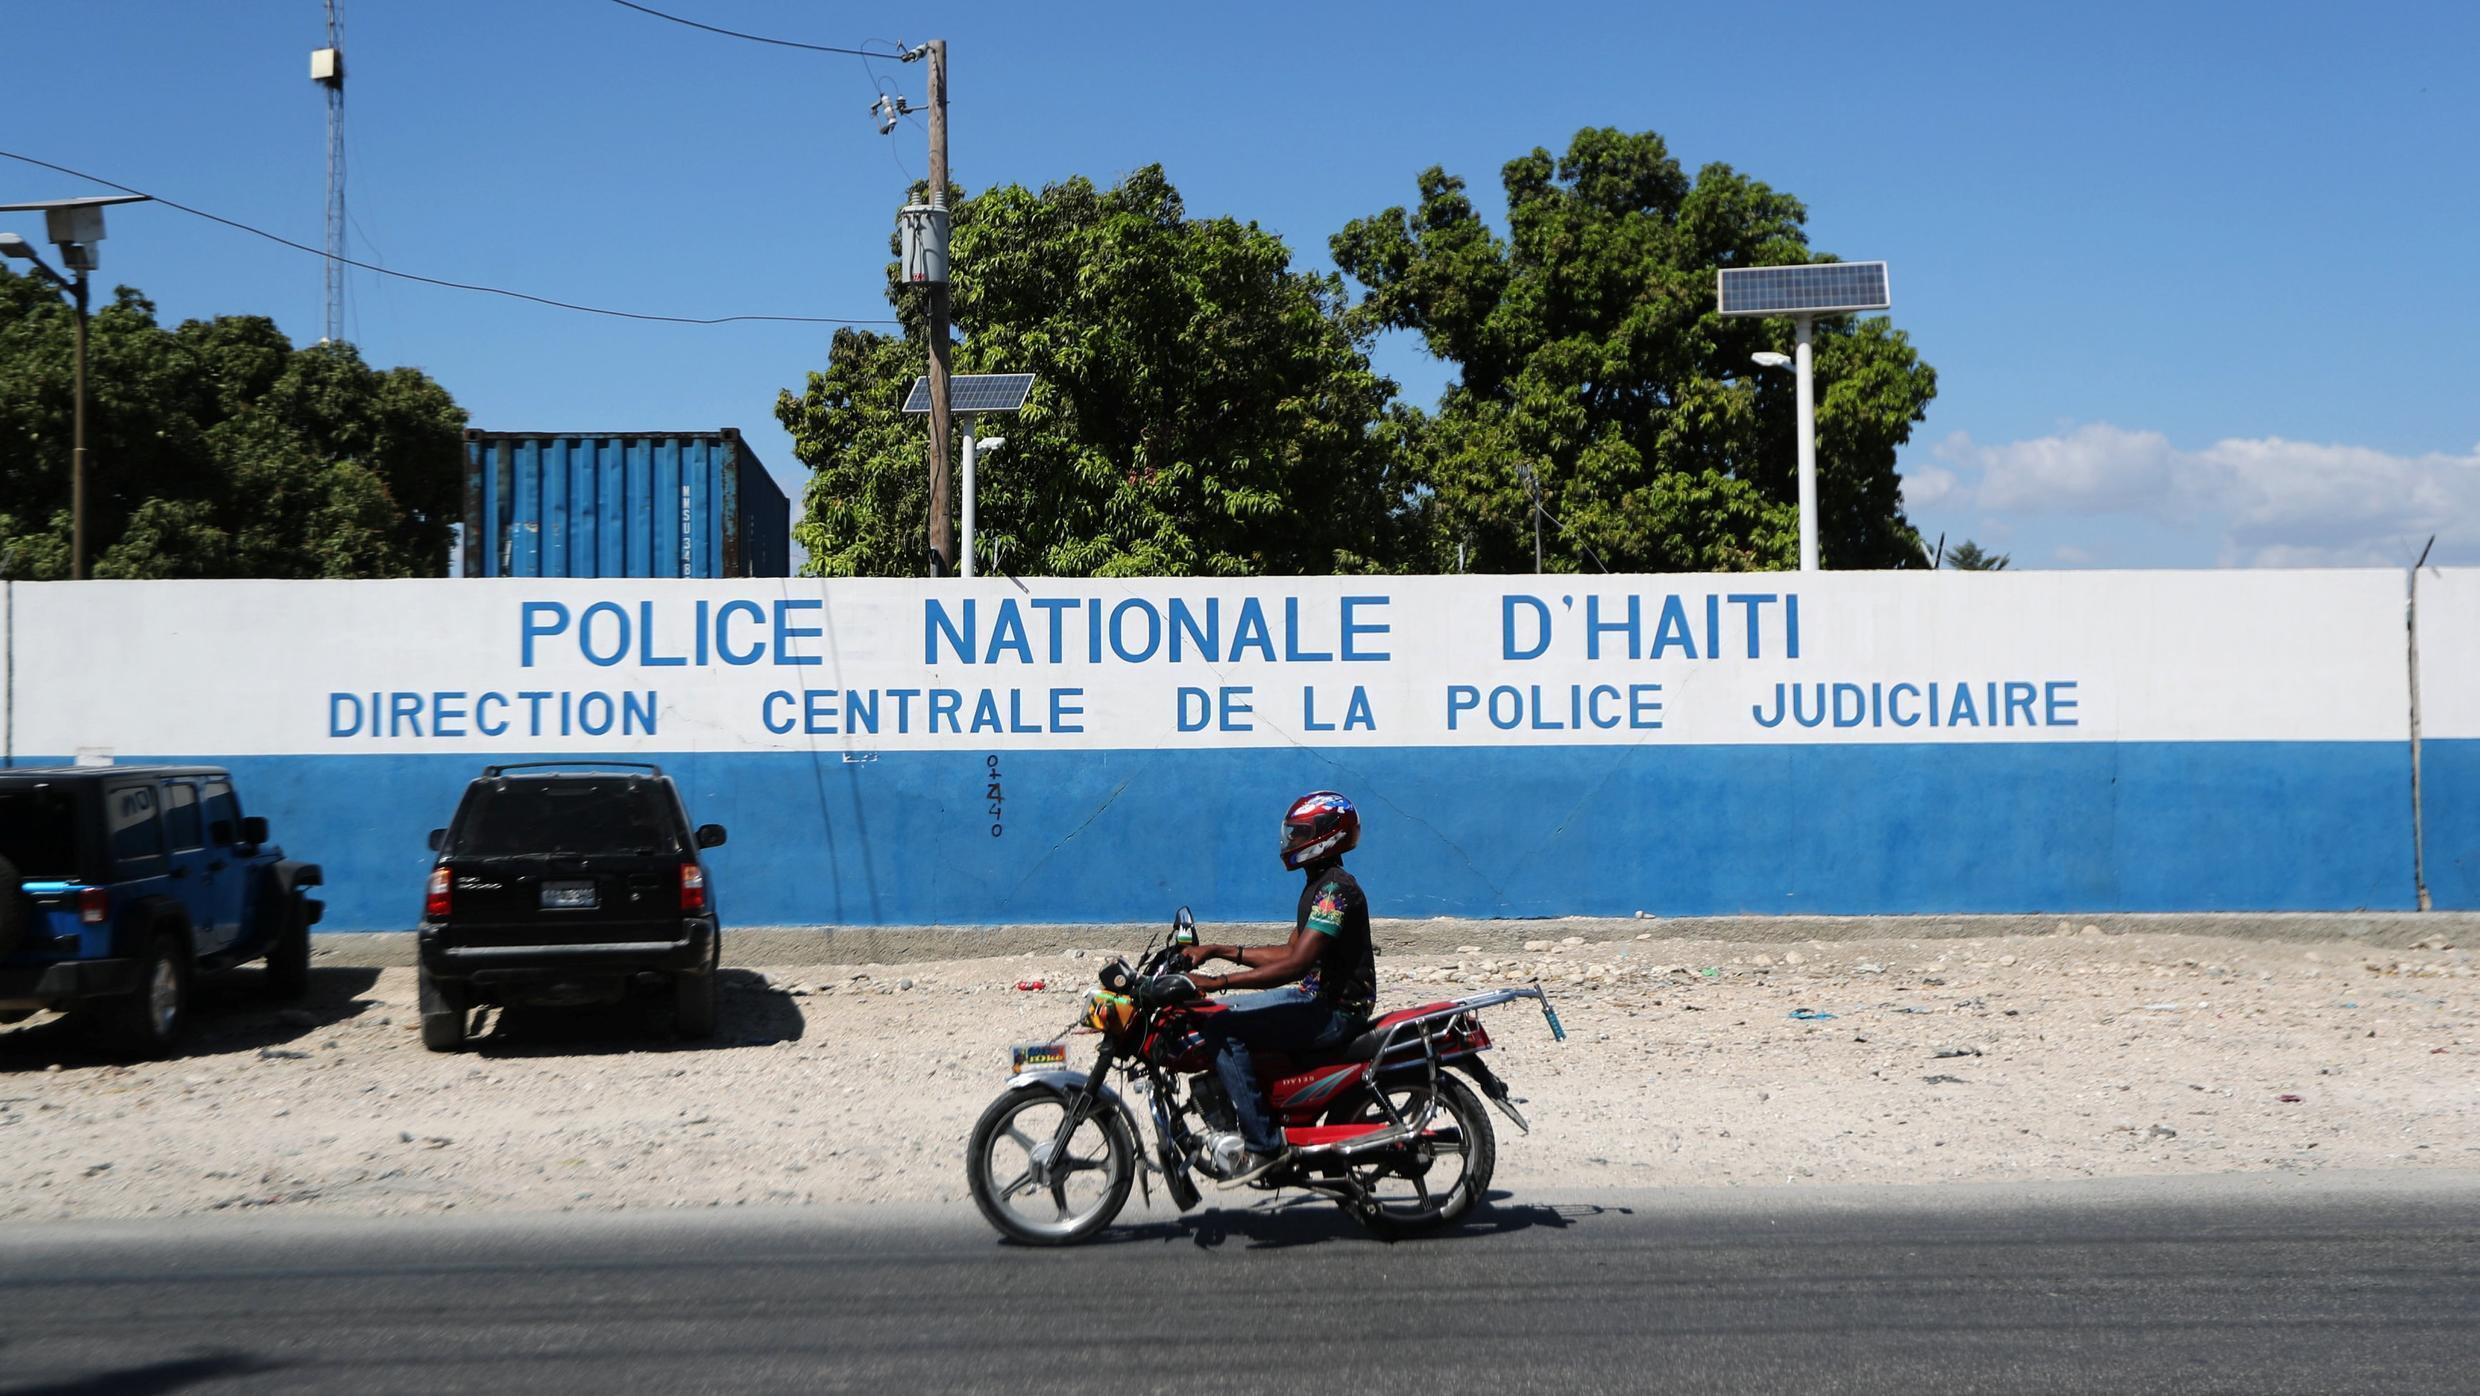 A police station in the Haitian capital Port-au-Prince.